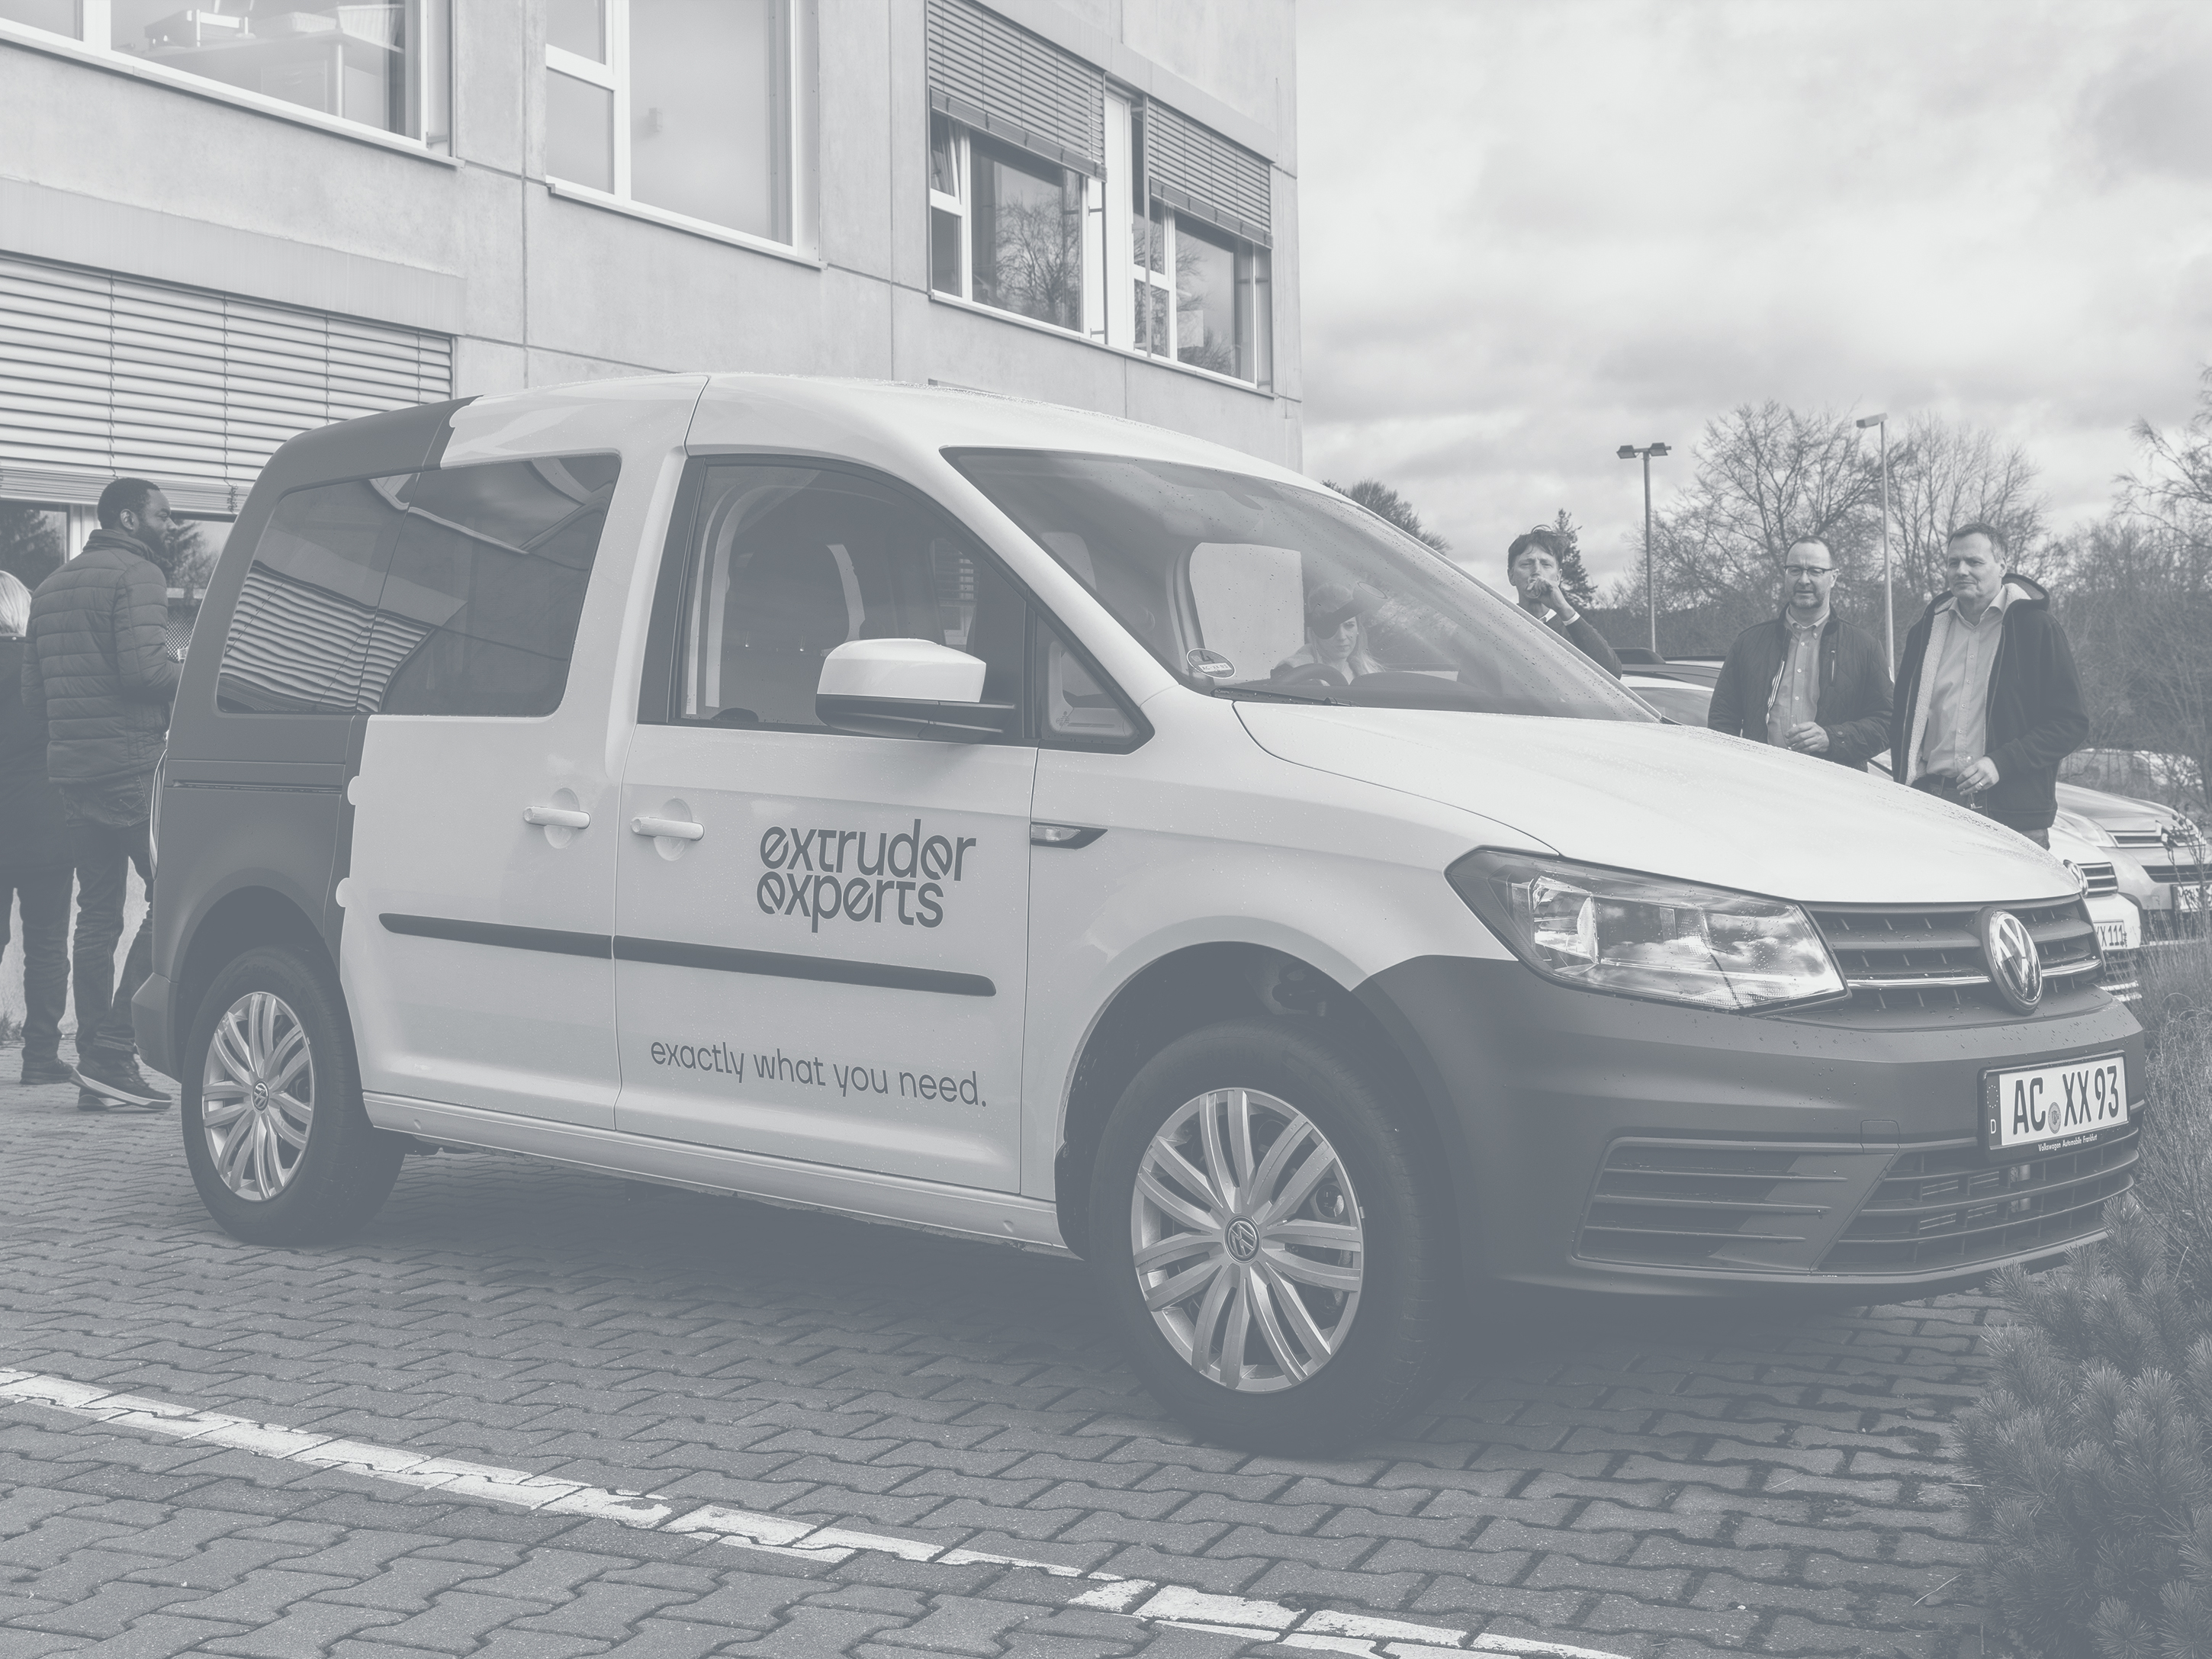 New company vehicle of Extruder Experts in front of the company building